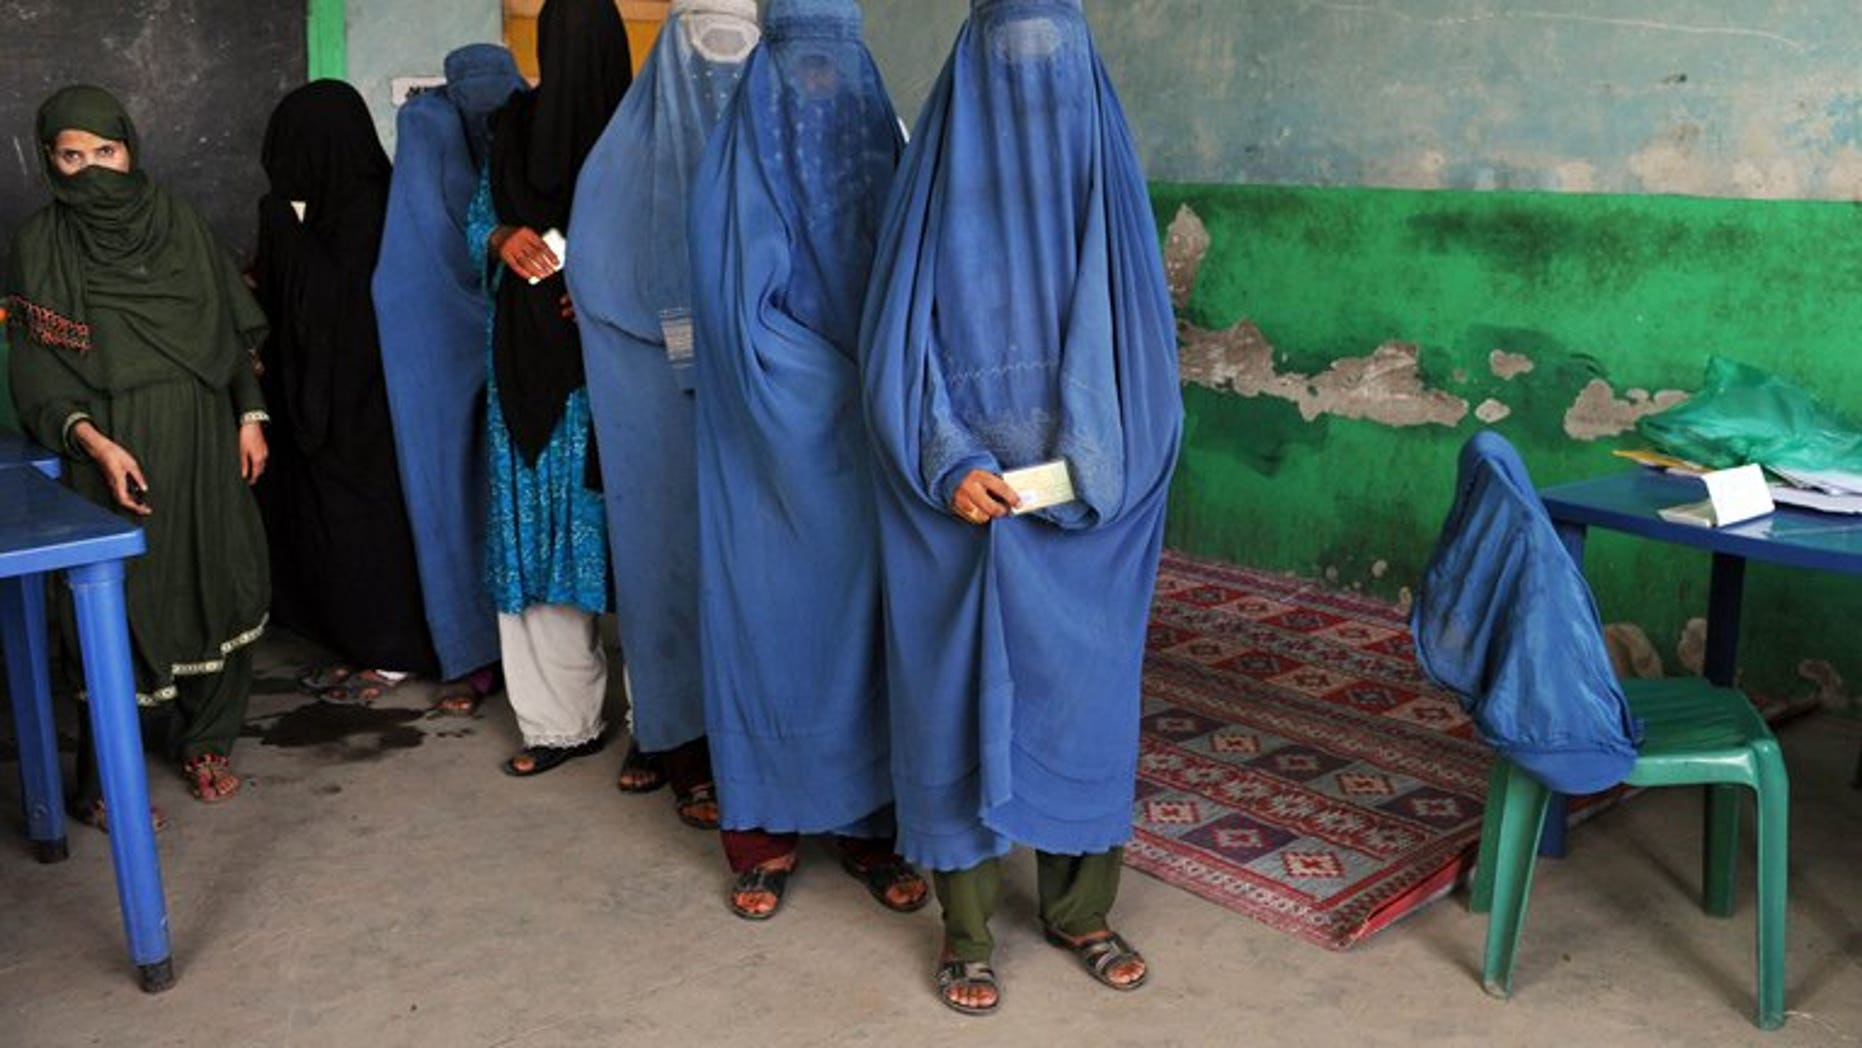 Photo taken on September 7, 2013 shows Afghan women waiting in line to receive voter identification cards at a poll registration centre in Jalalabad. A week before candidates can register for Afghanistan's presidential election, there is still no favourite to succeed Hamid Karzai, but deal making is going on in earnest behind the scenes.